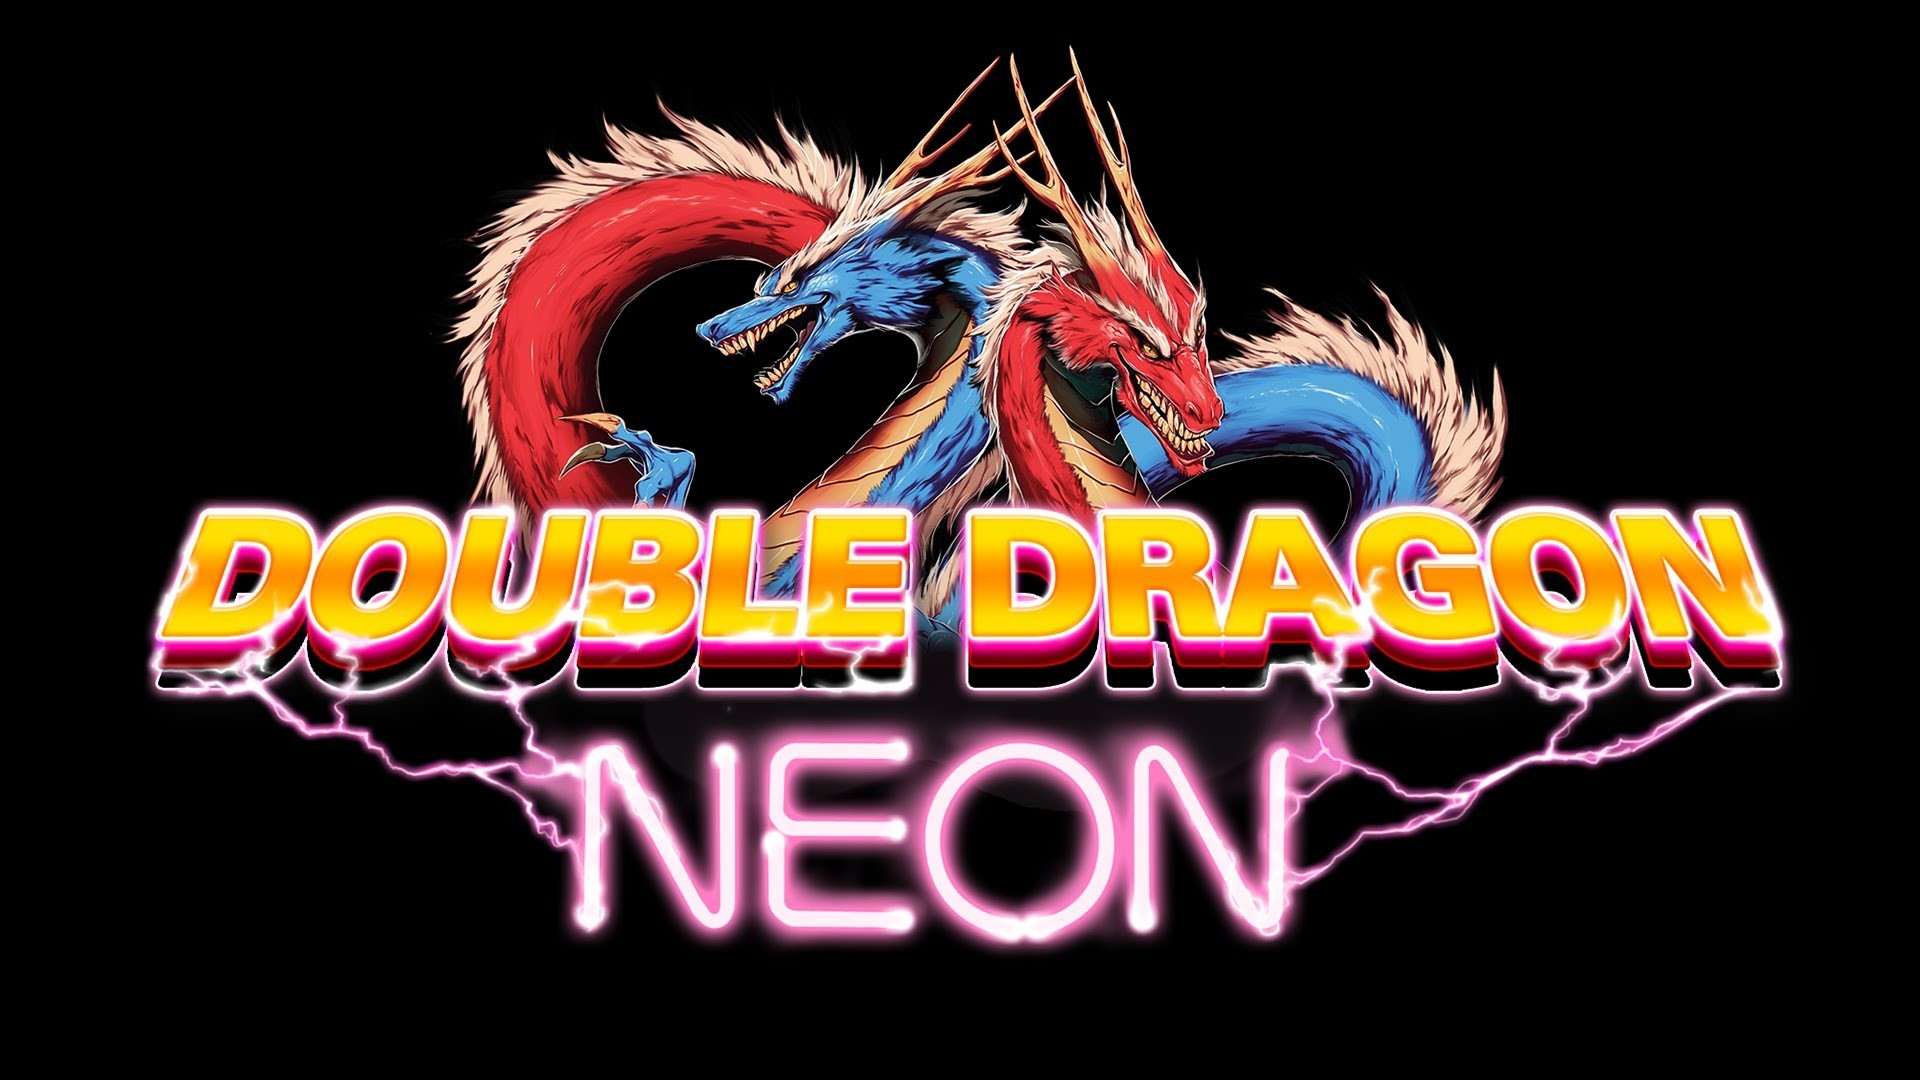 Res: 1920x1080, Double Dragon Neon HD Wallpapers 12 - 1920 X 1080